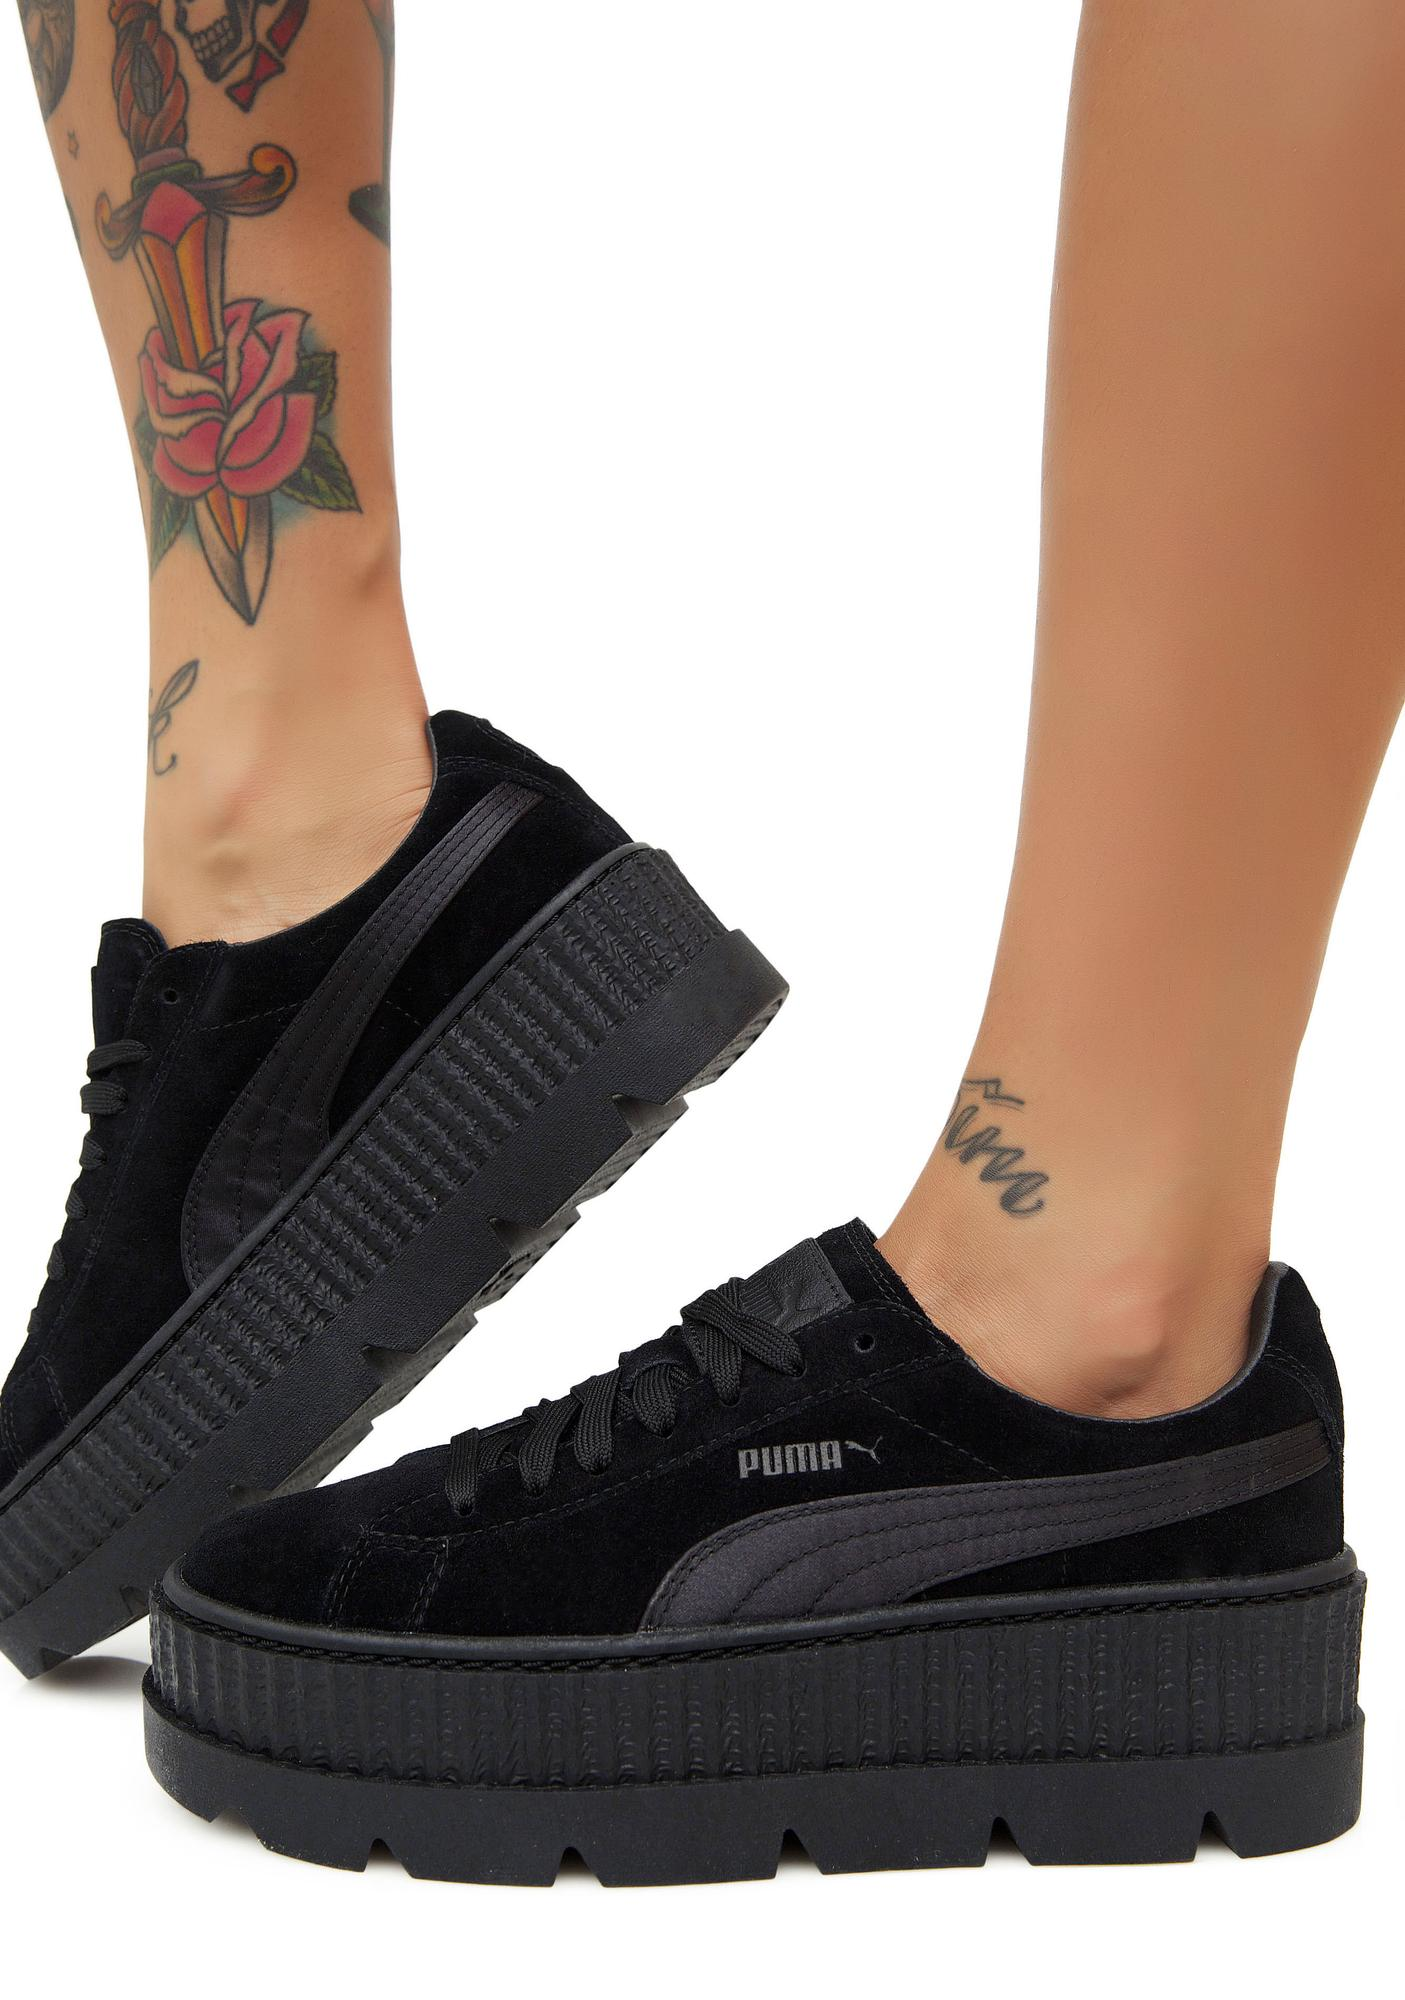 Onyx FENTY PUMA by Rihanna Cleated Suede Creepers